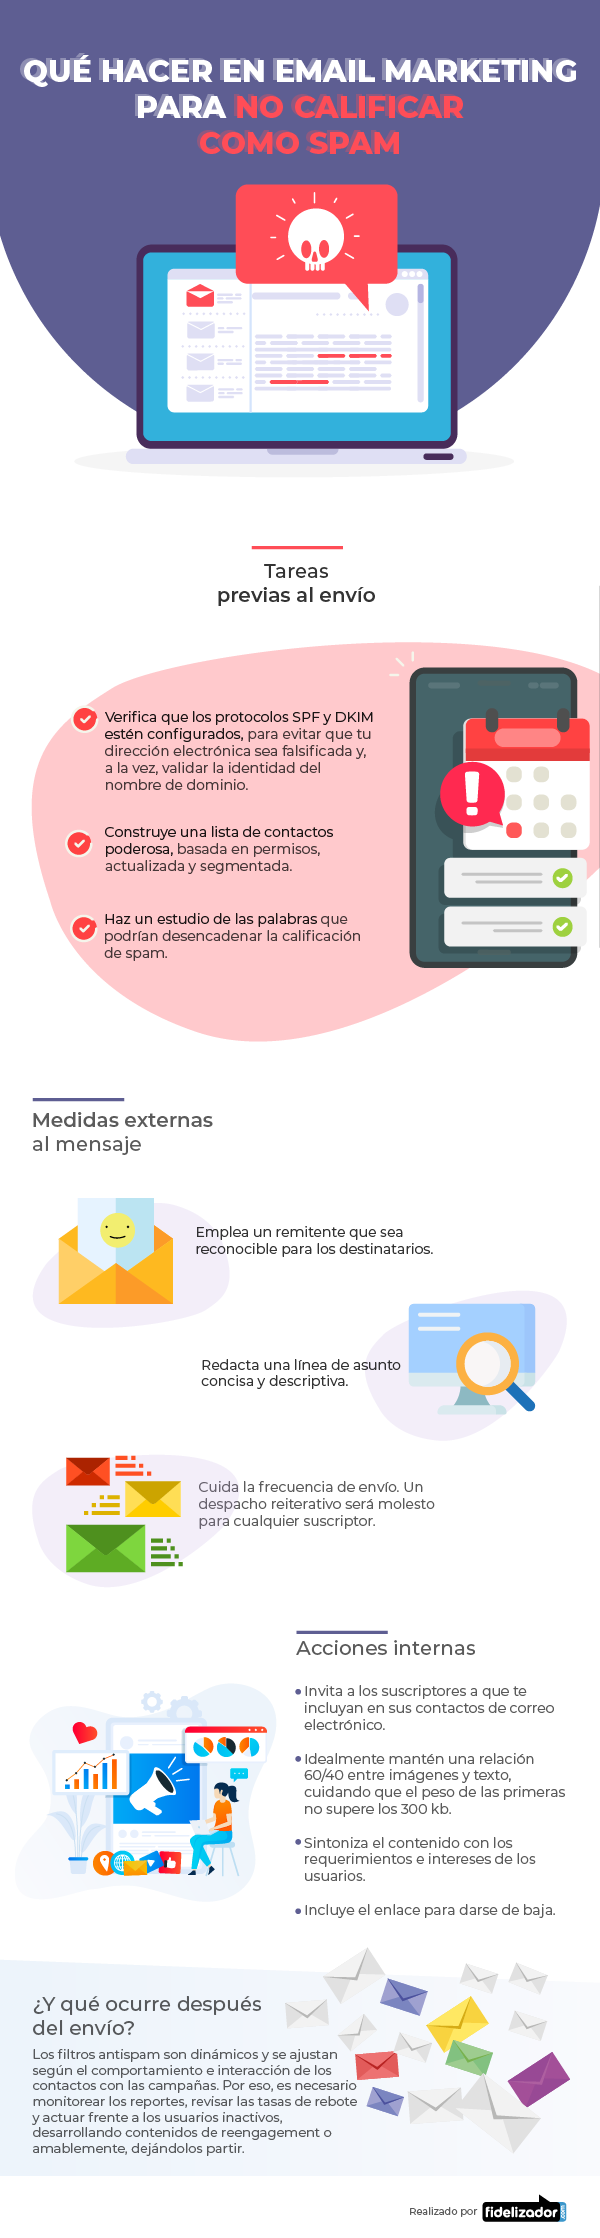 Qué hacer en Email Marketing para no calificar como spam #infografia #infographic #marketing